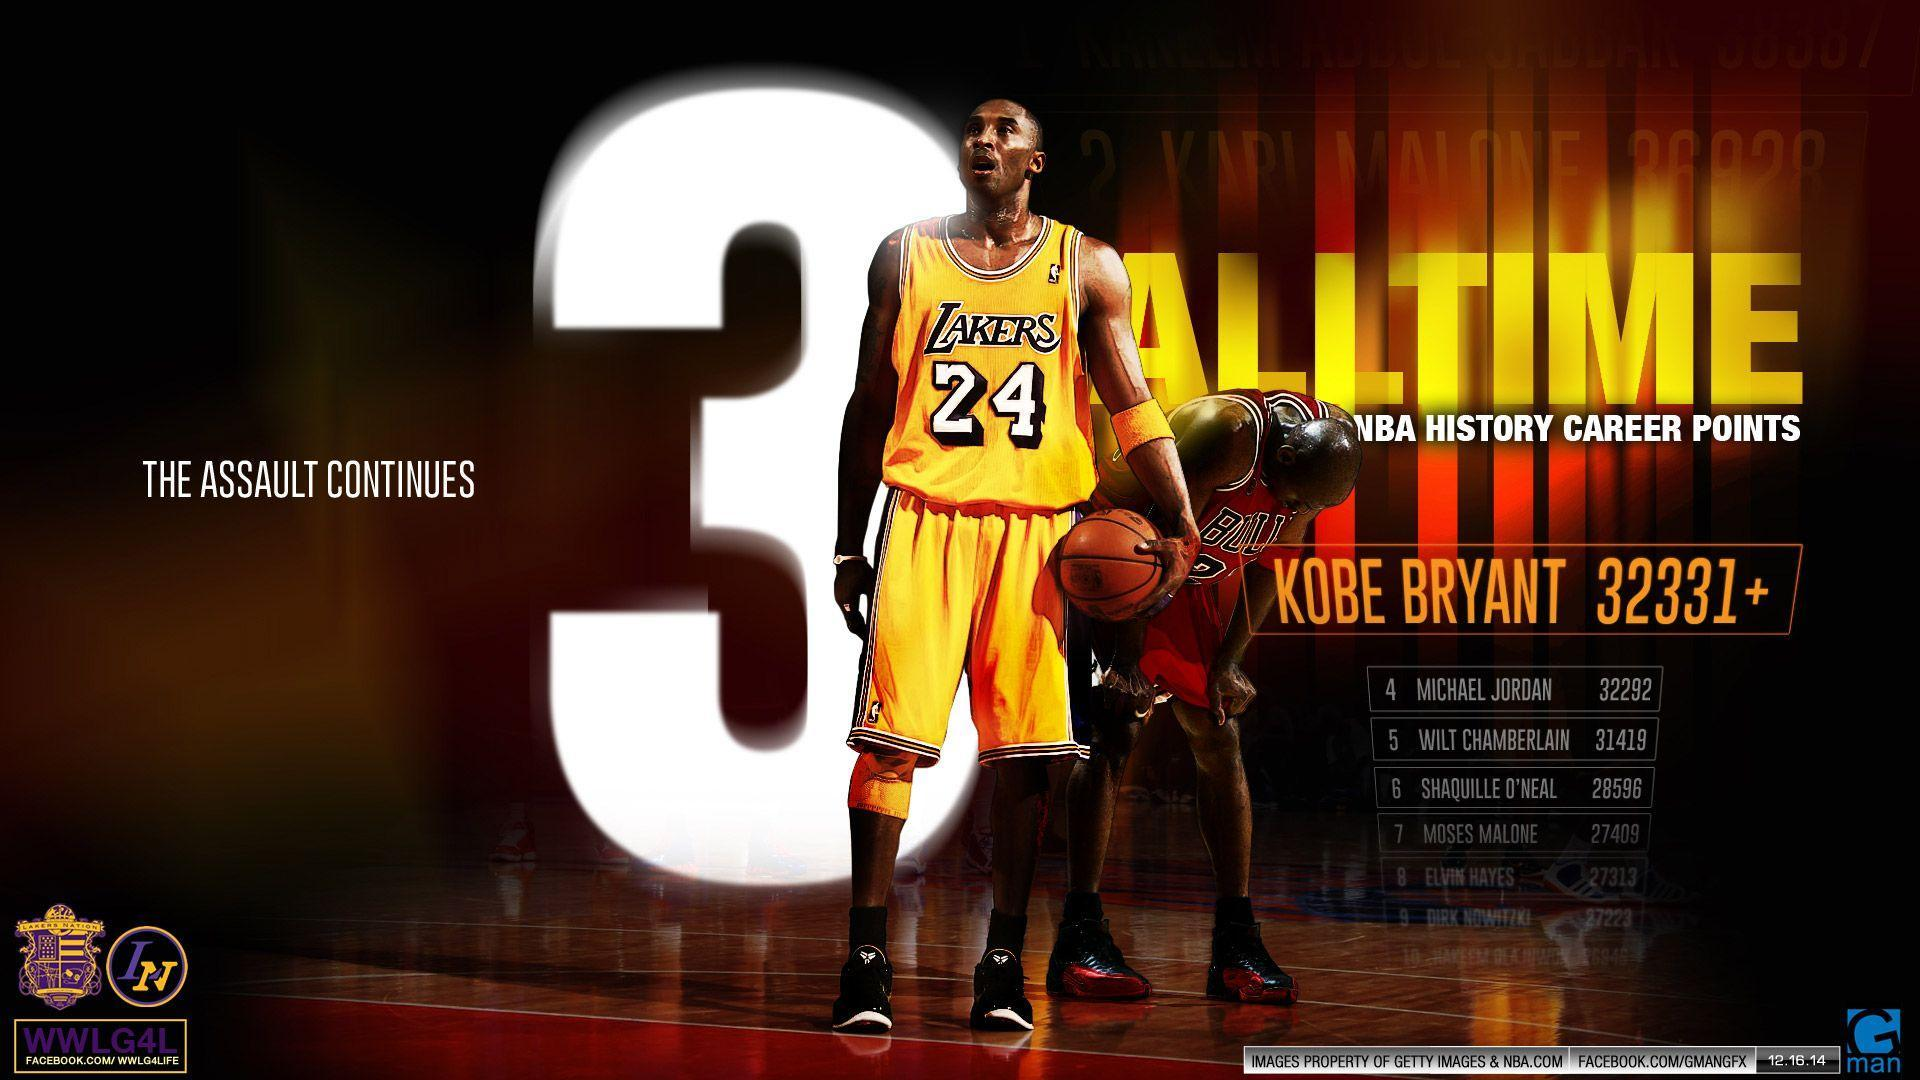 kobe bryant wallpaper 2016 - photo #17